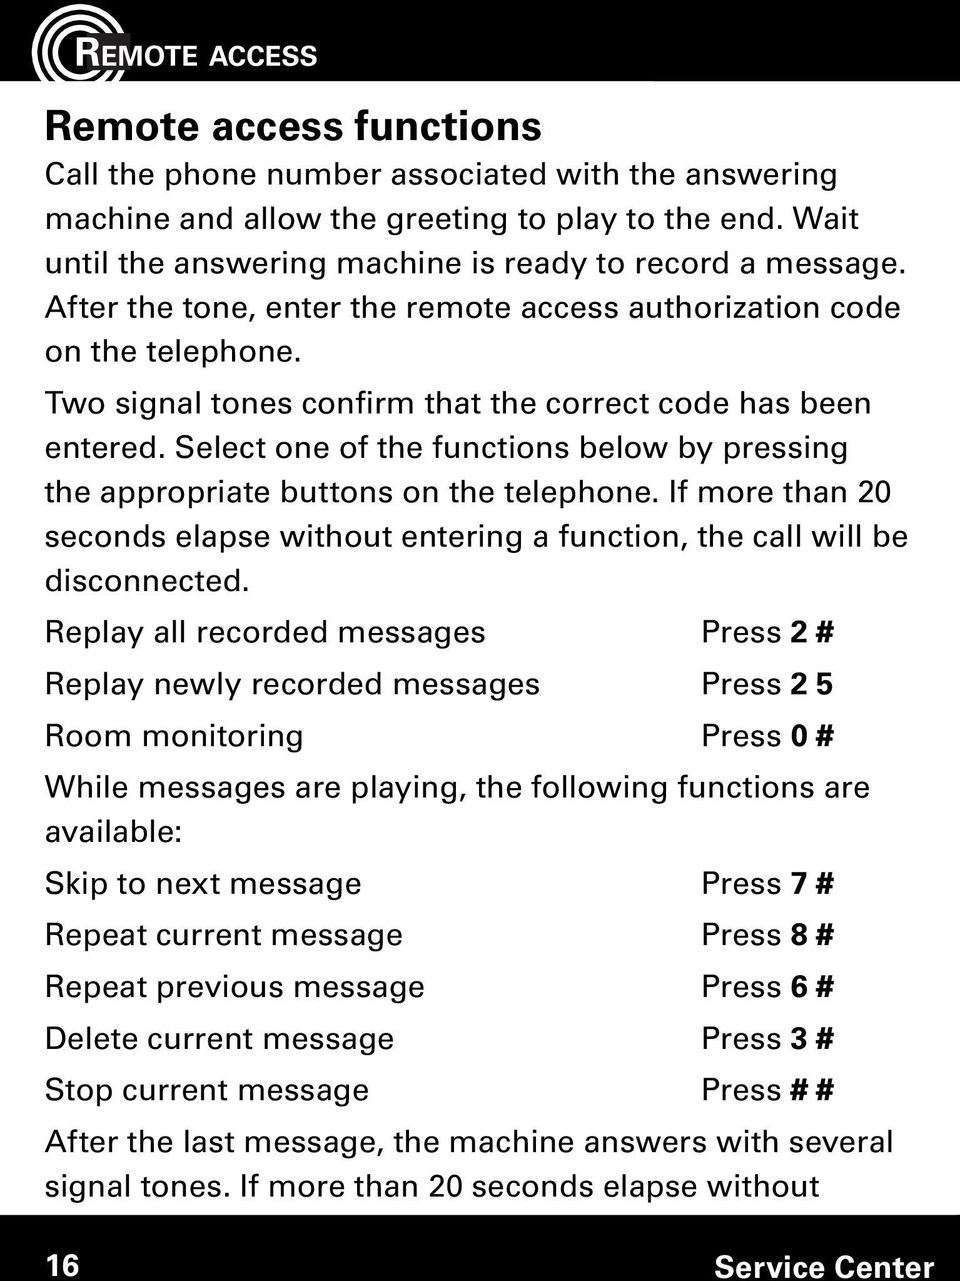 Two signal tones confirm that the correct code has been entered. Select one of the functions below by pressing the appropriate buttons on the telephone.